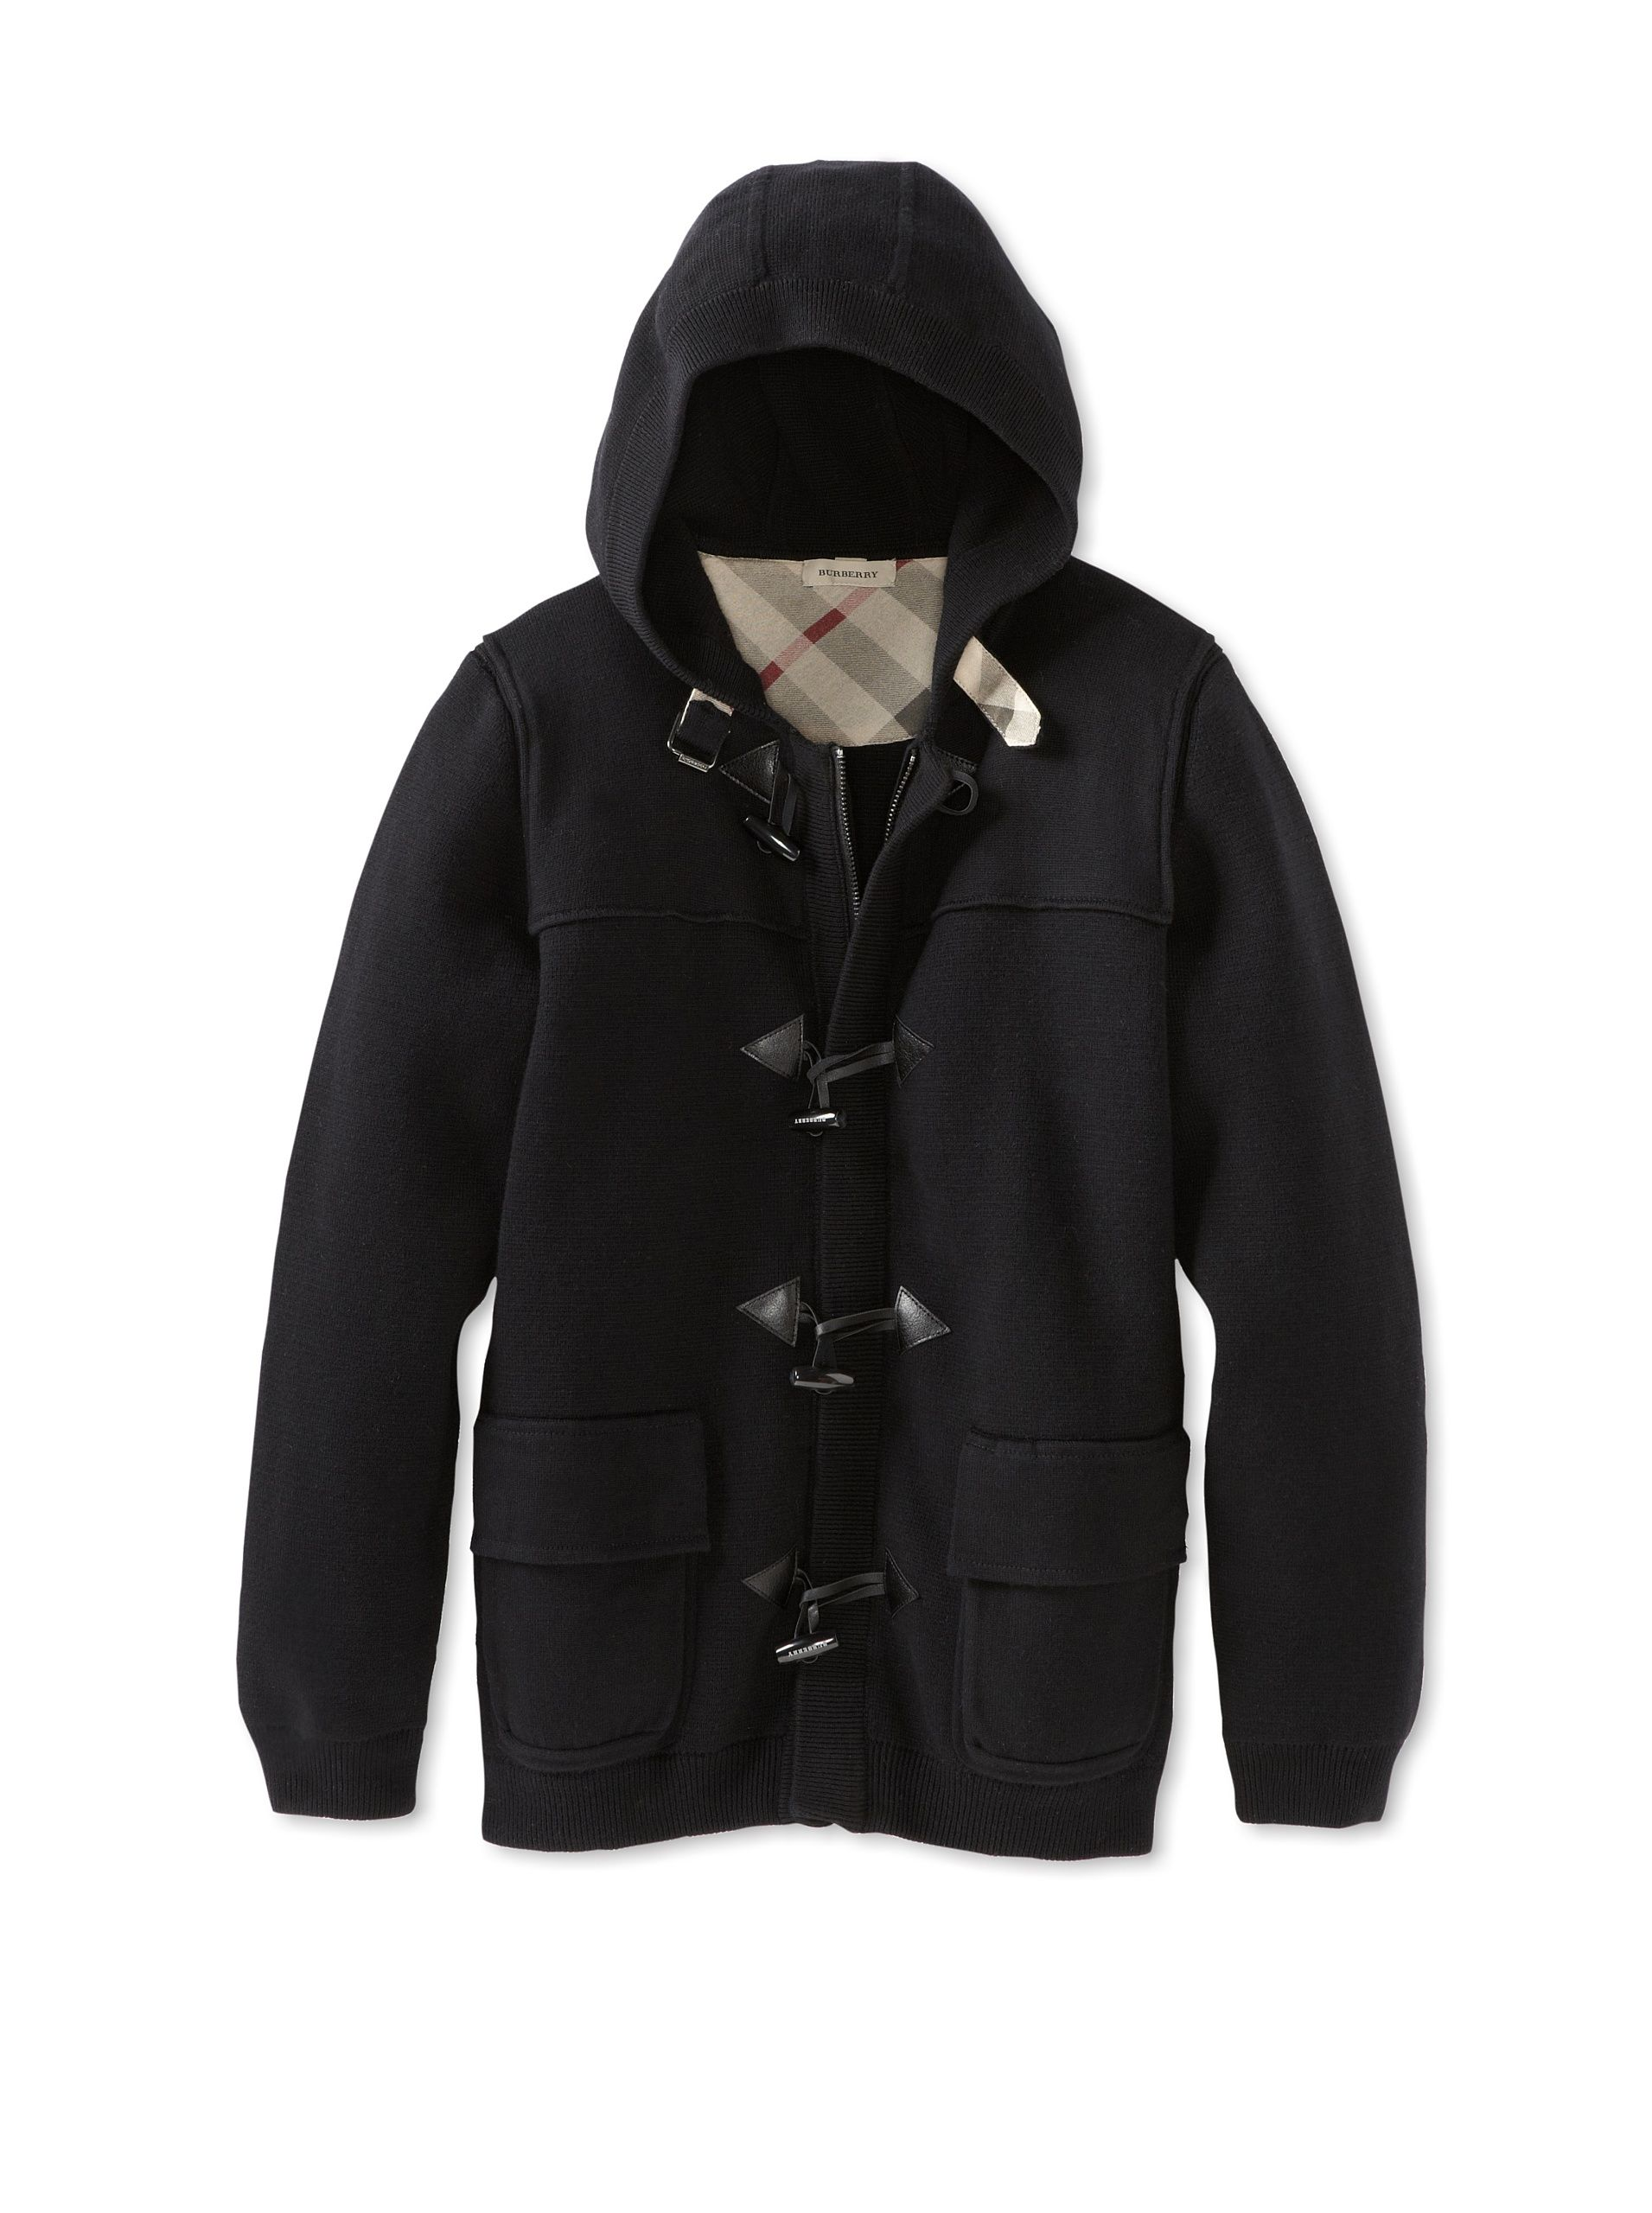 Burberry Kid's Cardigan Sweater (Black) Medium-weight knit, hooded neckline, front zipper closure with toggle overlay, patch pockets, ribbed knit trim, signature plaid trim #Cardigan #Sweater #